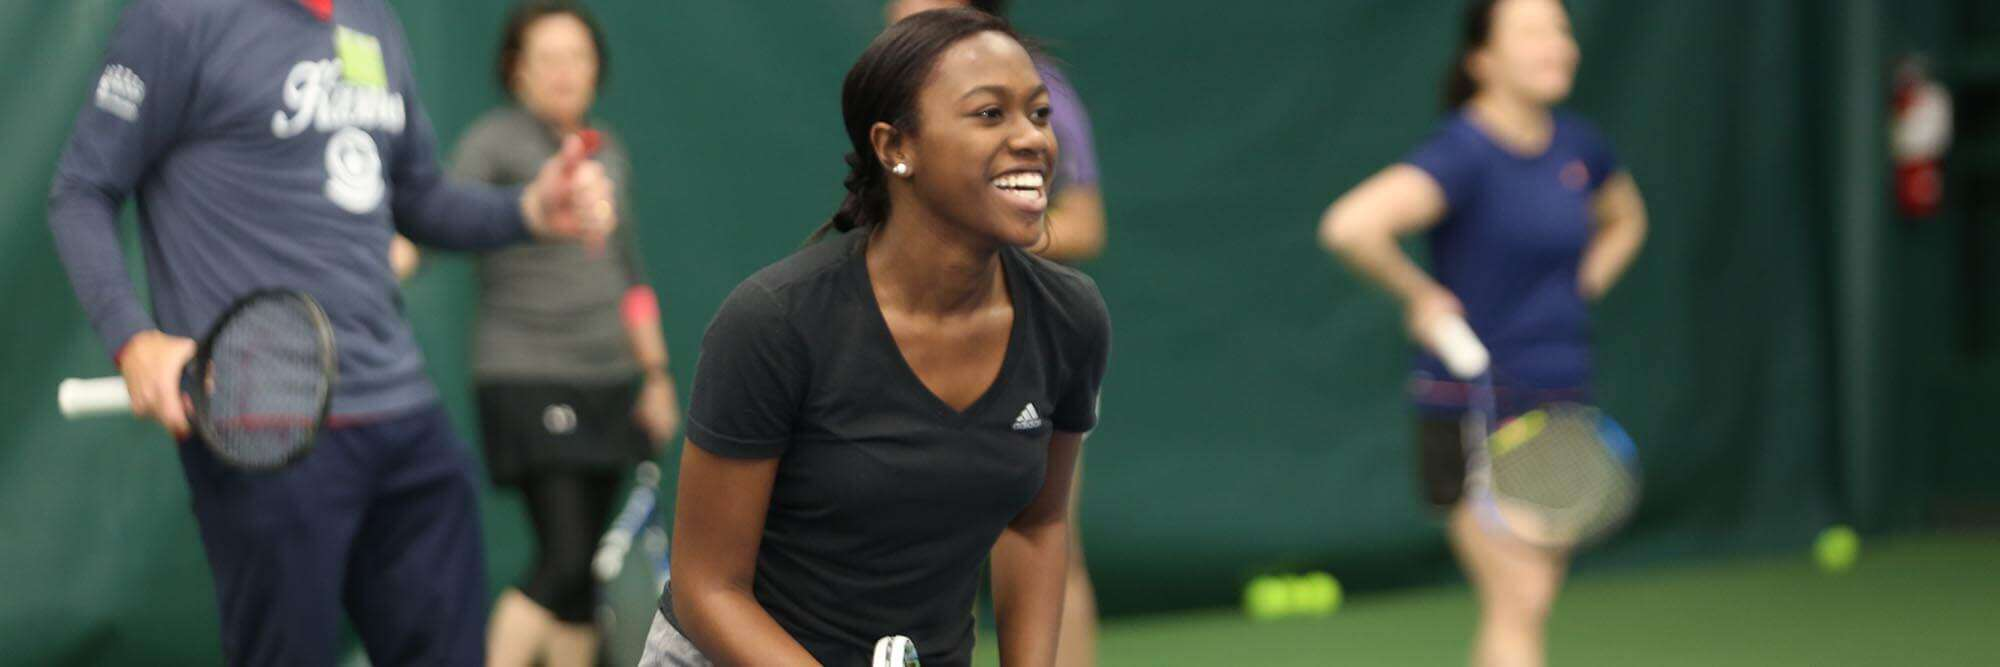 Tennis Banner Image With Black Female Columbia Association